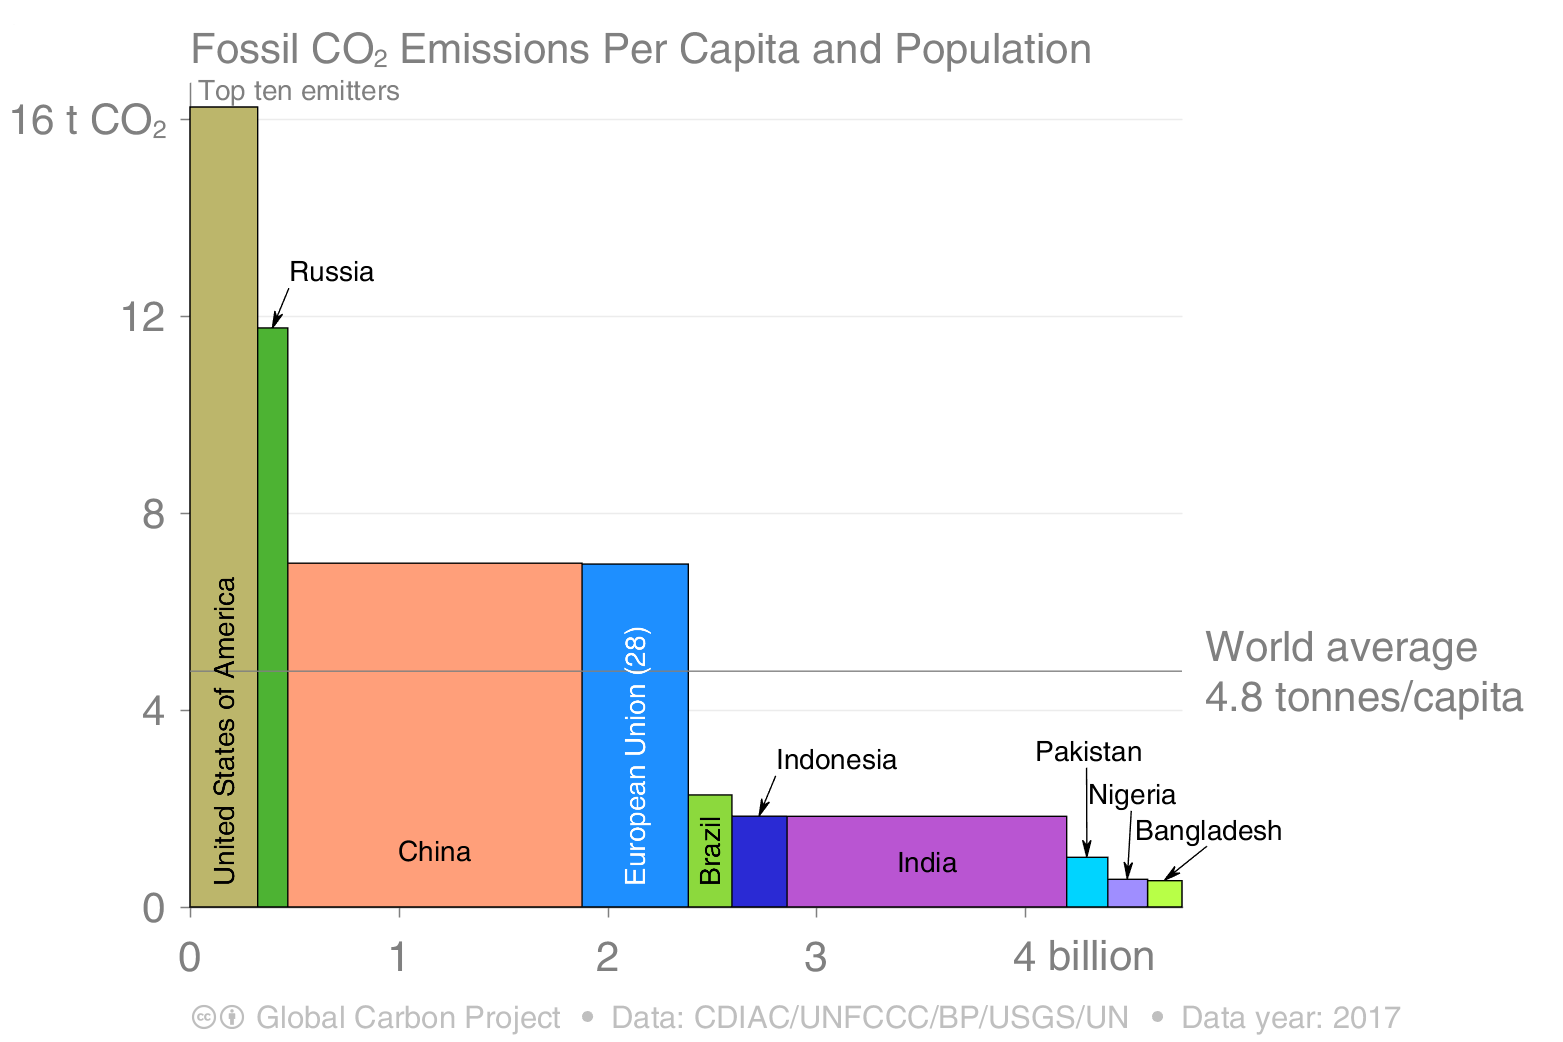 Fossil CO2 emissions per capita and population